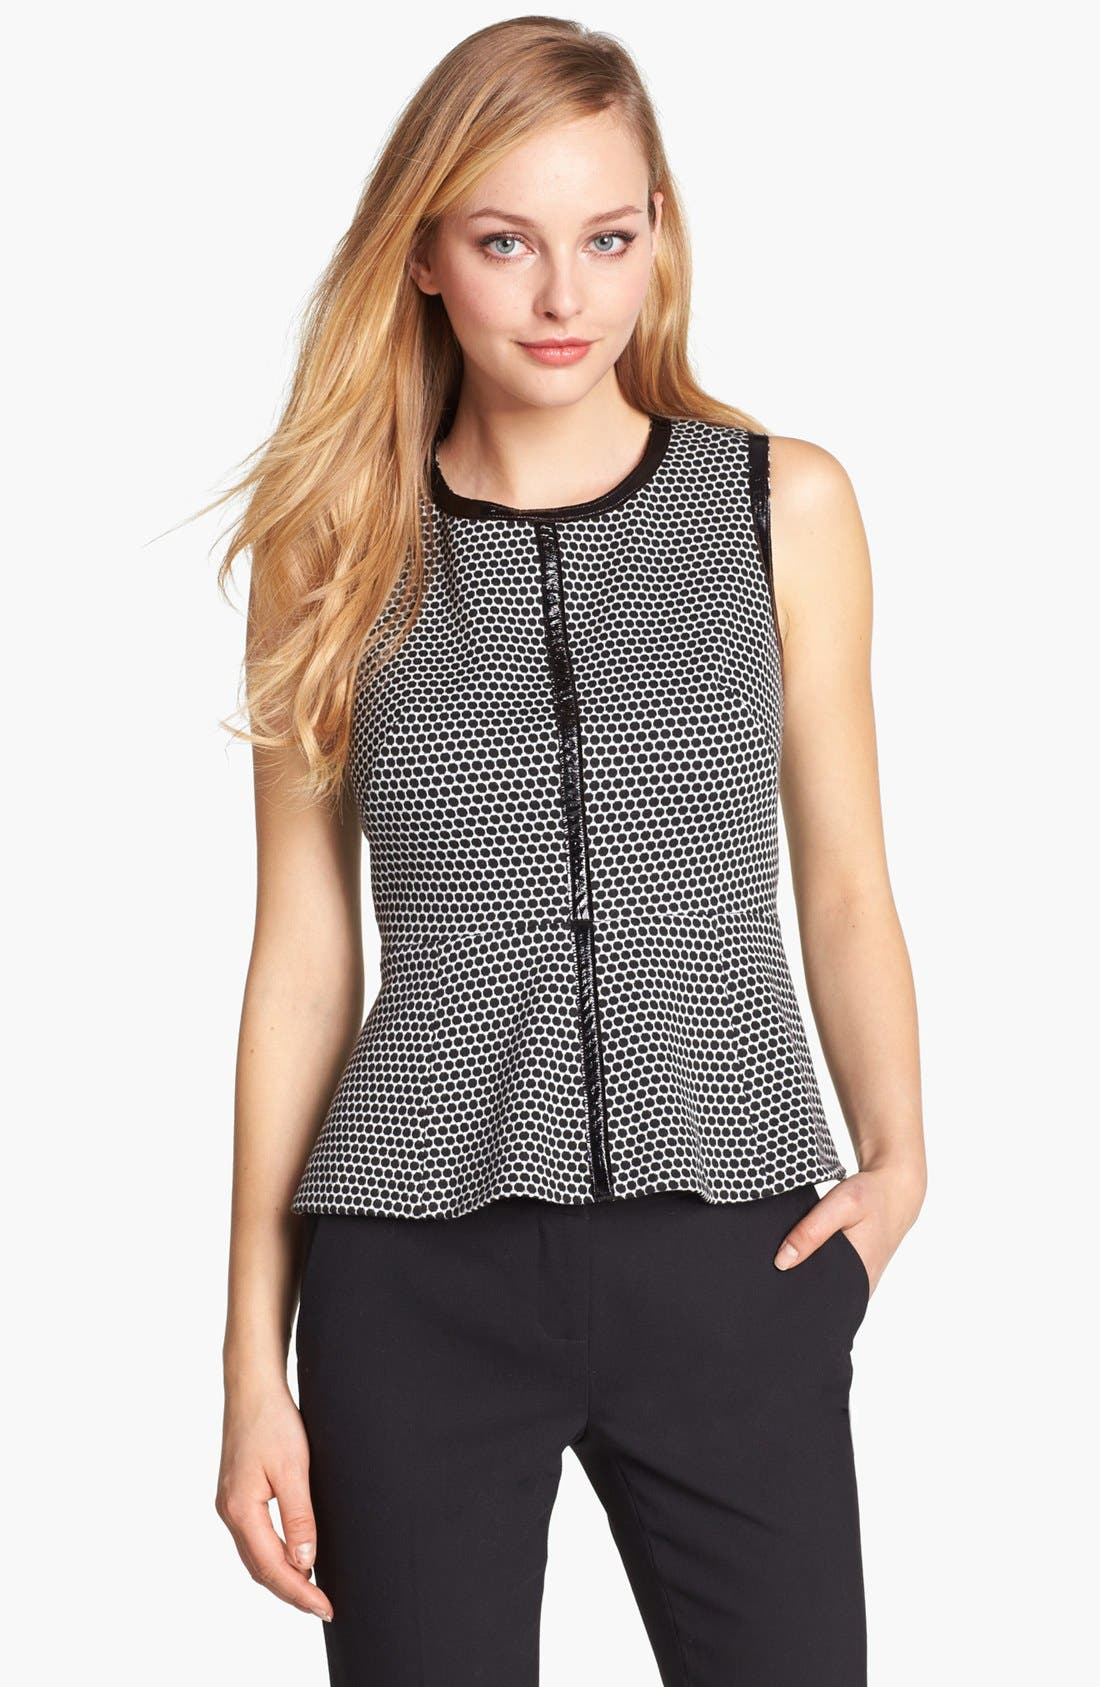 Main Image - Vince Camuto Faux Leather Trim Peplum Top (Online Only)